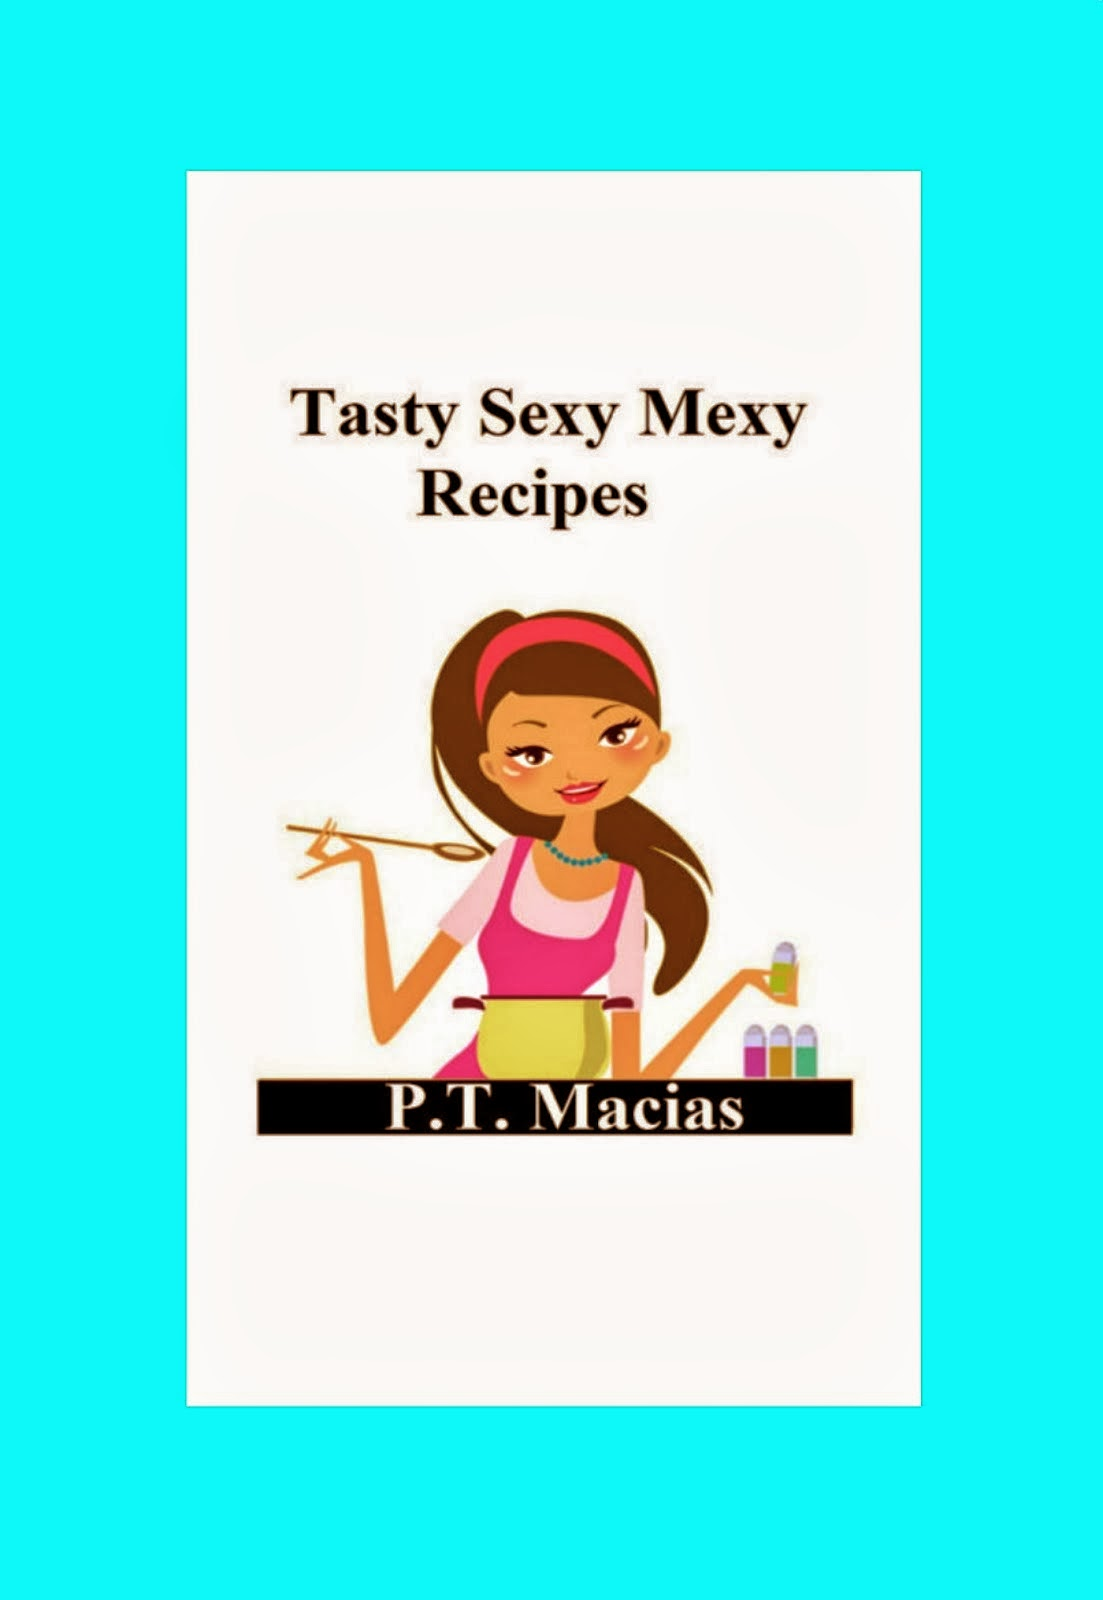 Tasty Sexy Mexy Recipes By P.T. Macias